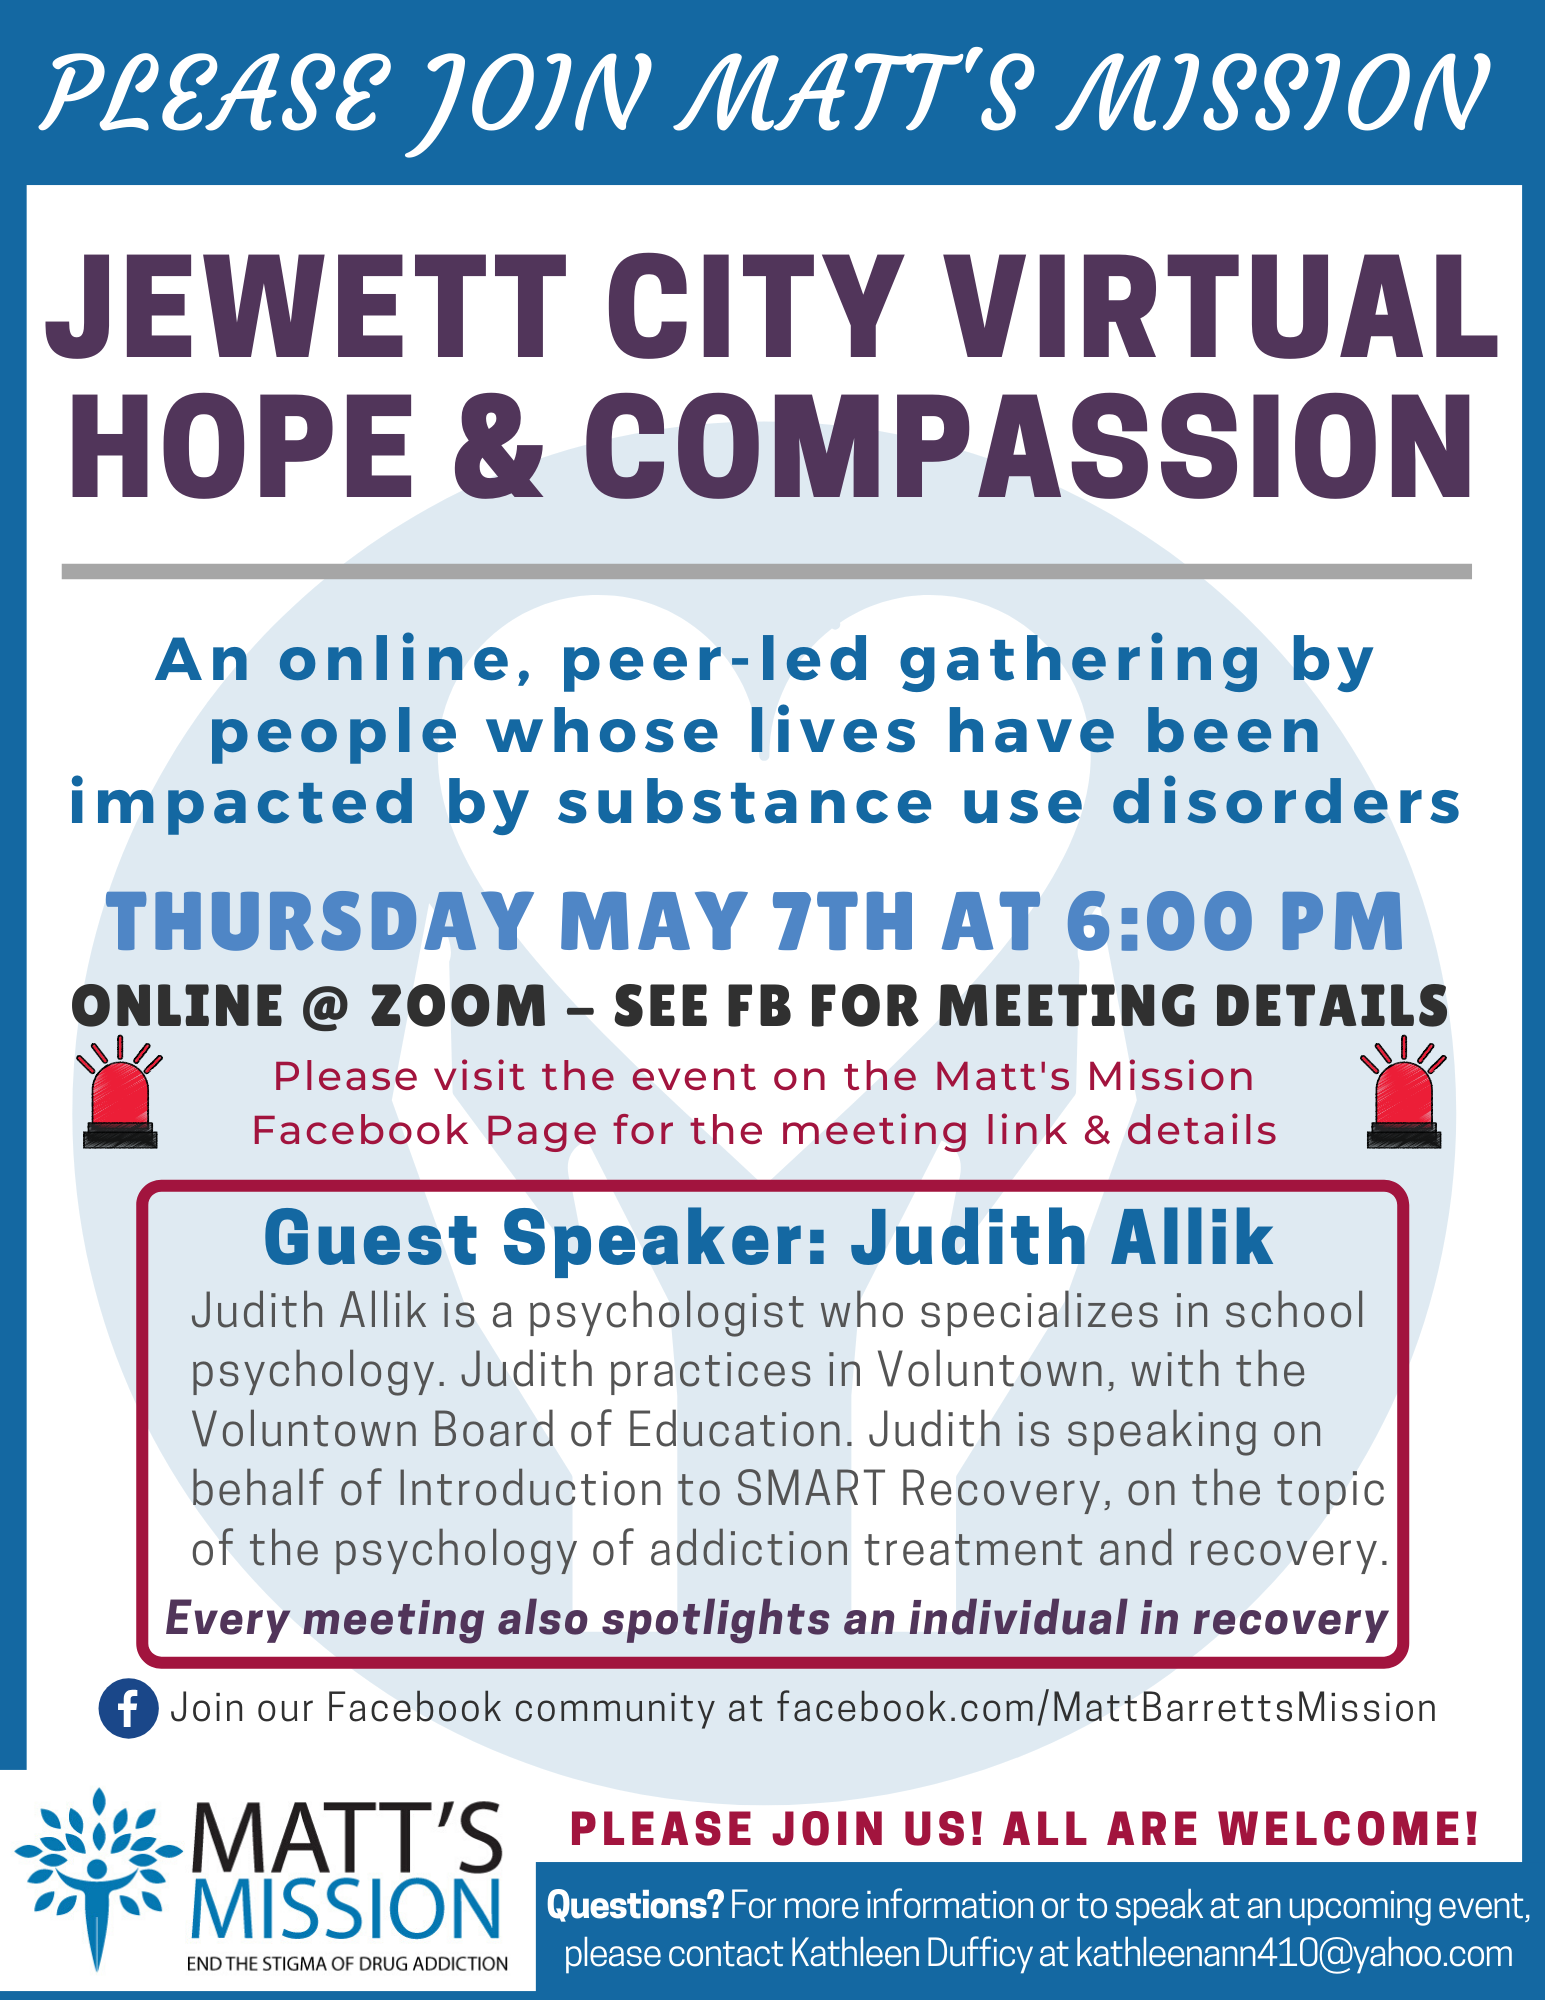 Join us for Jewett City Hope and Compassion on May 7th, 2020.